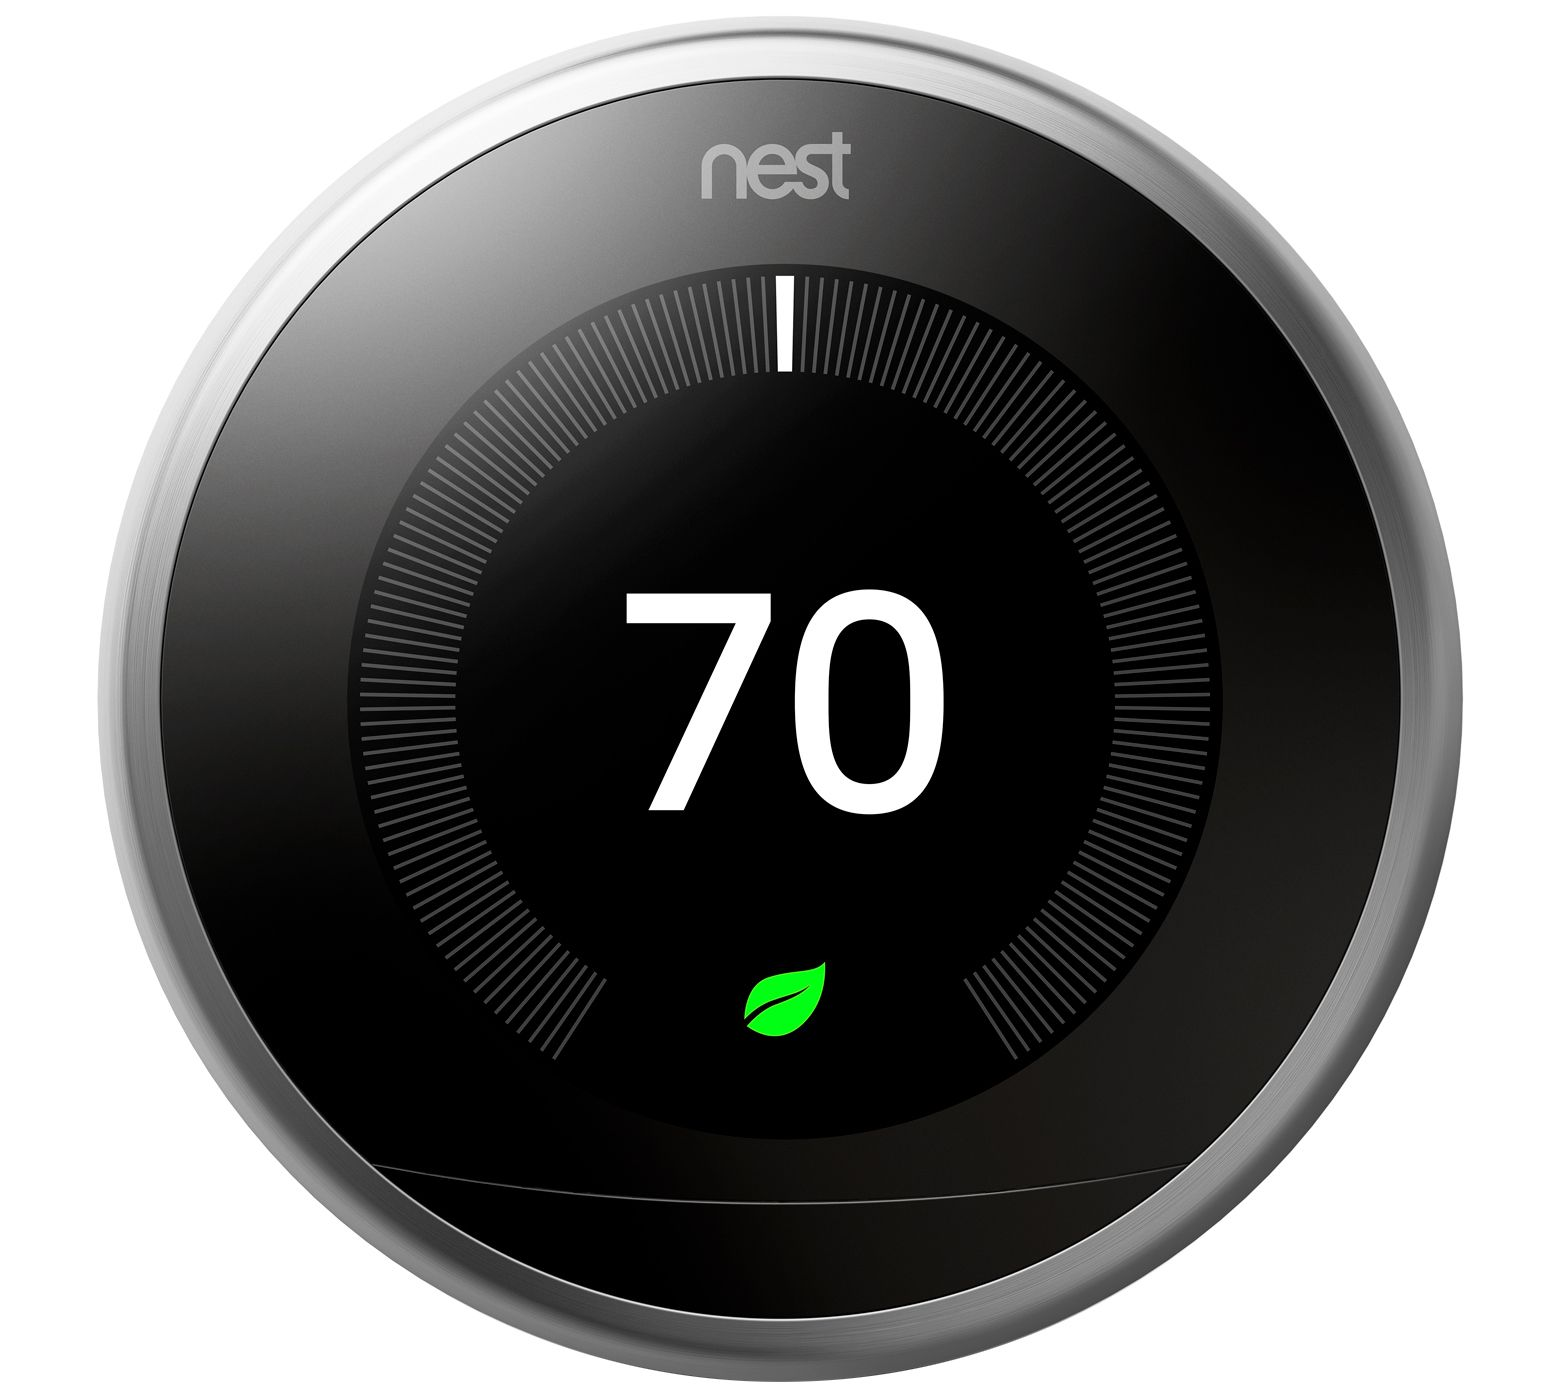 Google Nest will learn what temperatures you like for your home